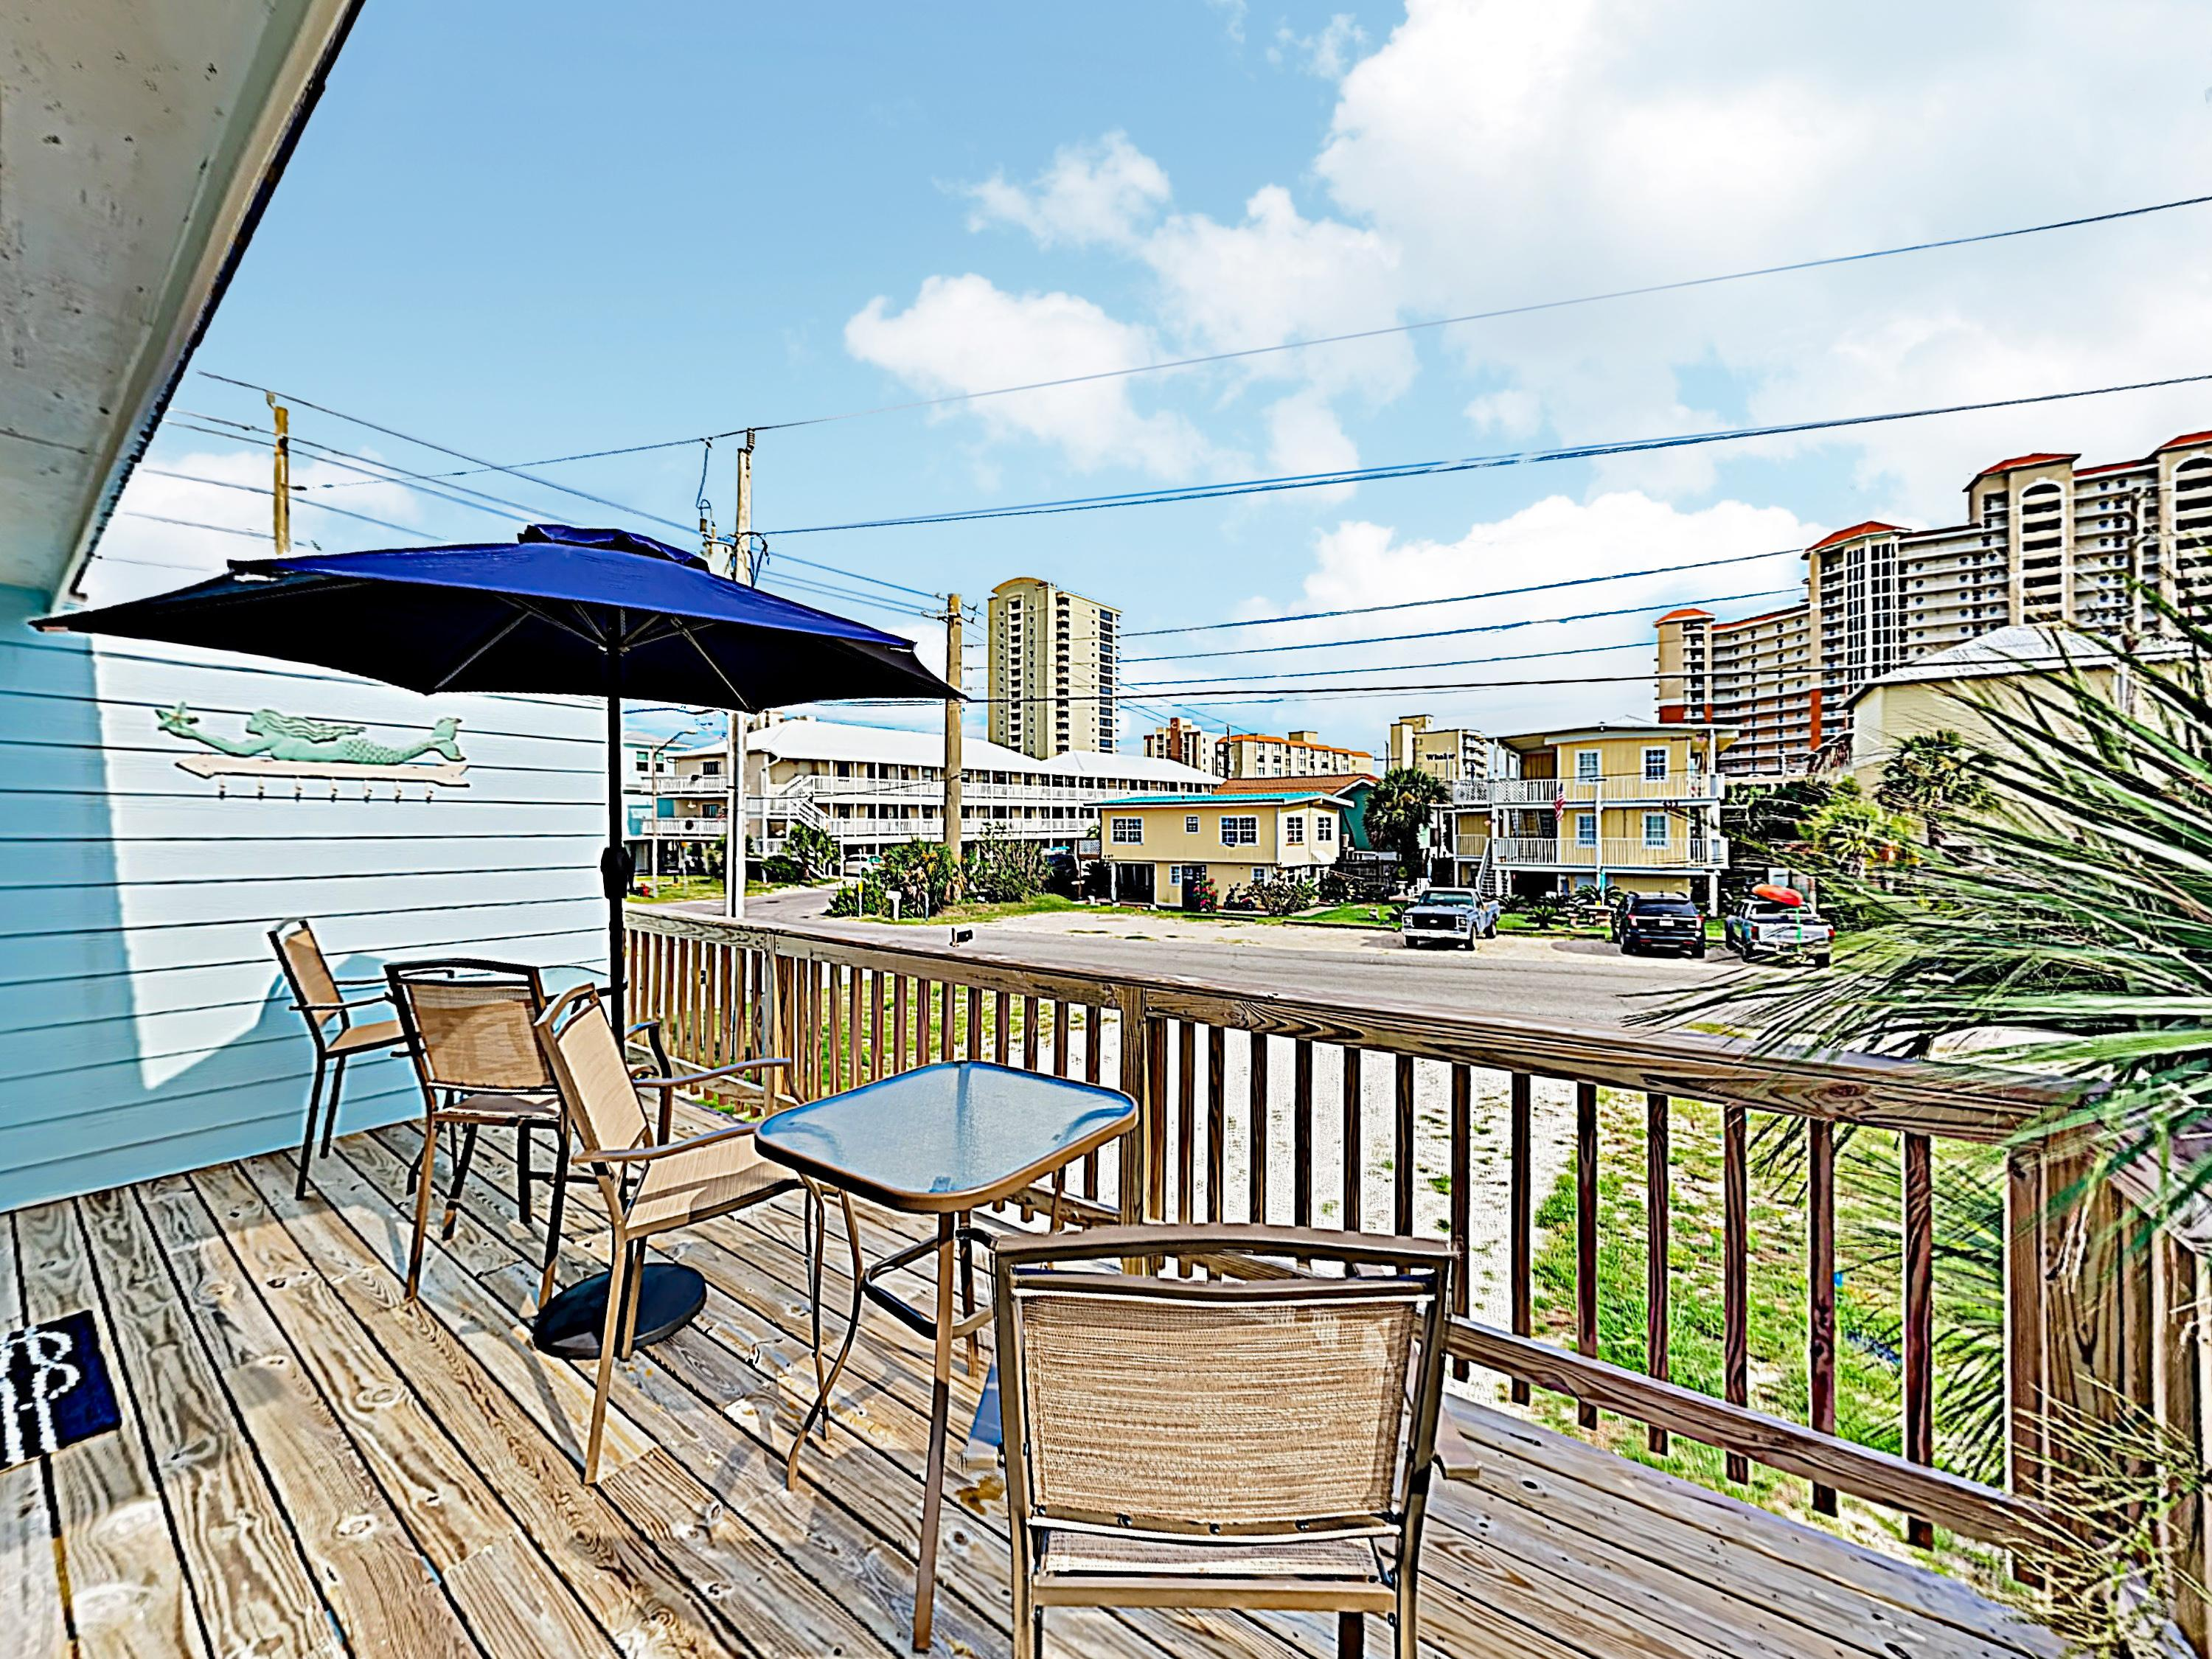 Relax in the shade on the deck and enjoy the gulf breeze.